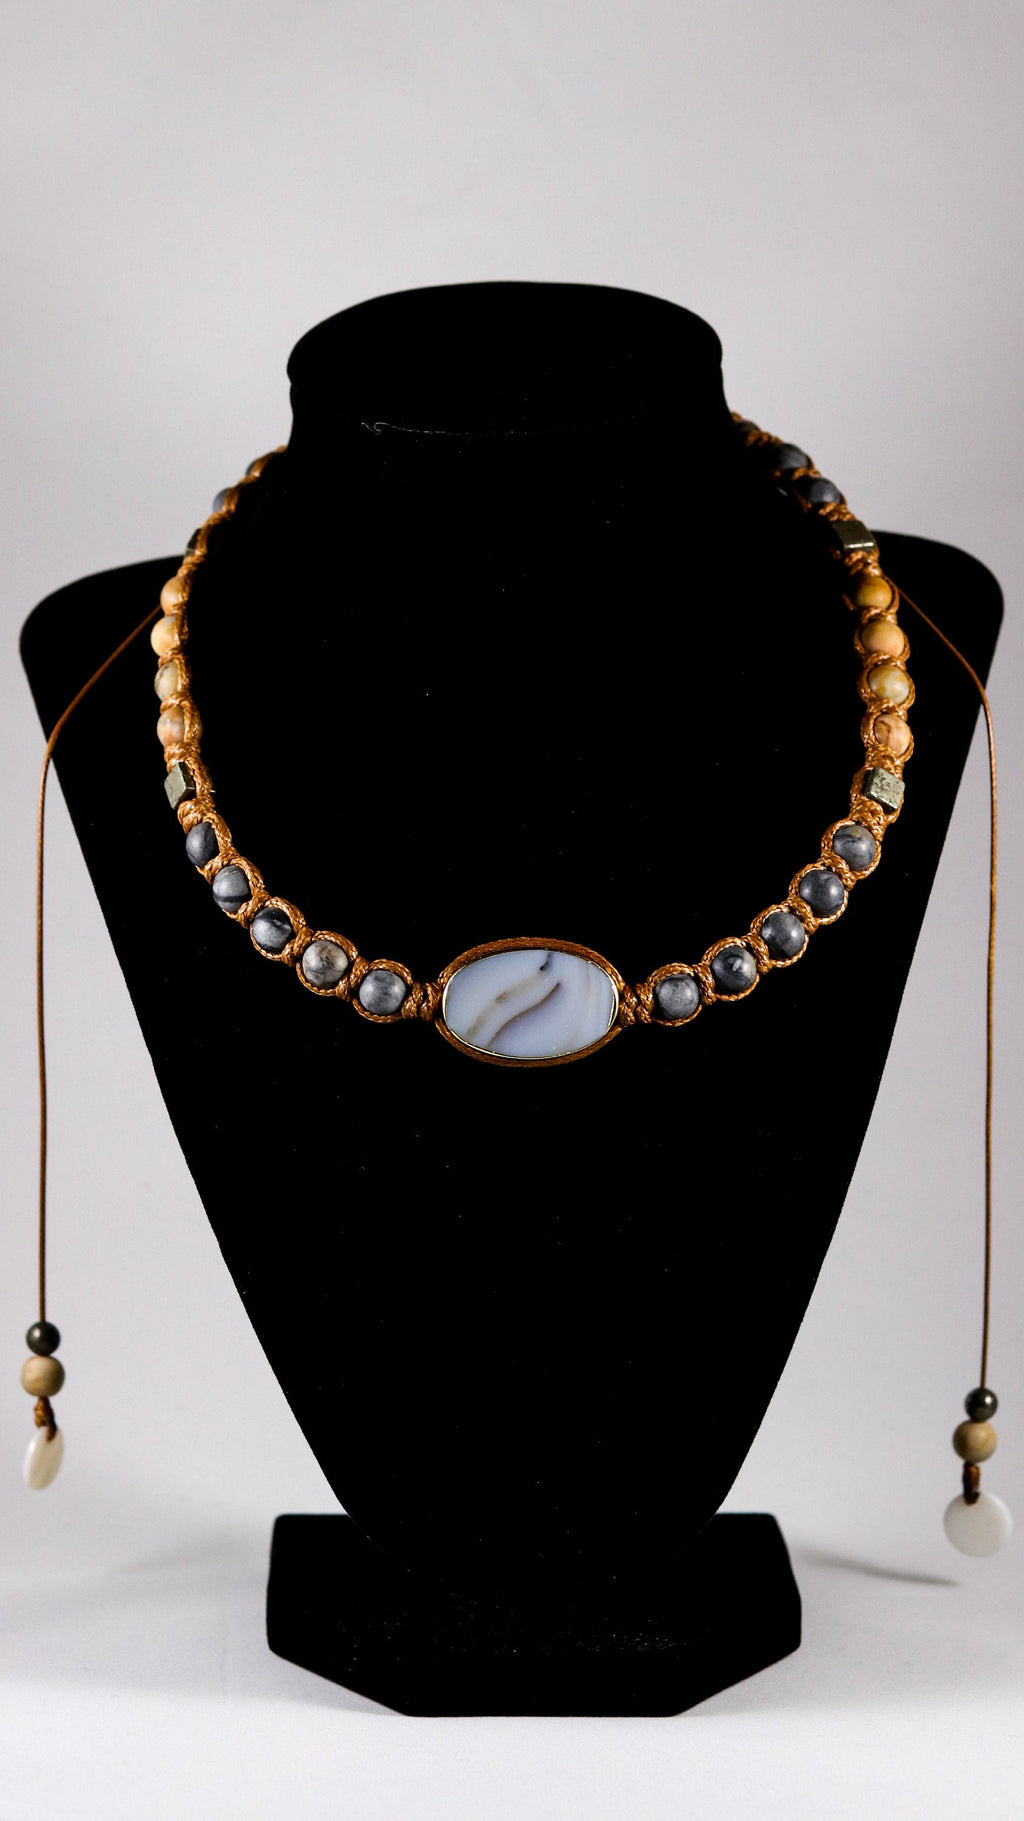 Agate with Black Picasso Jasper and Pyrite macrame necklace - BurzanDesign